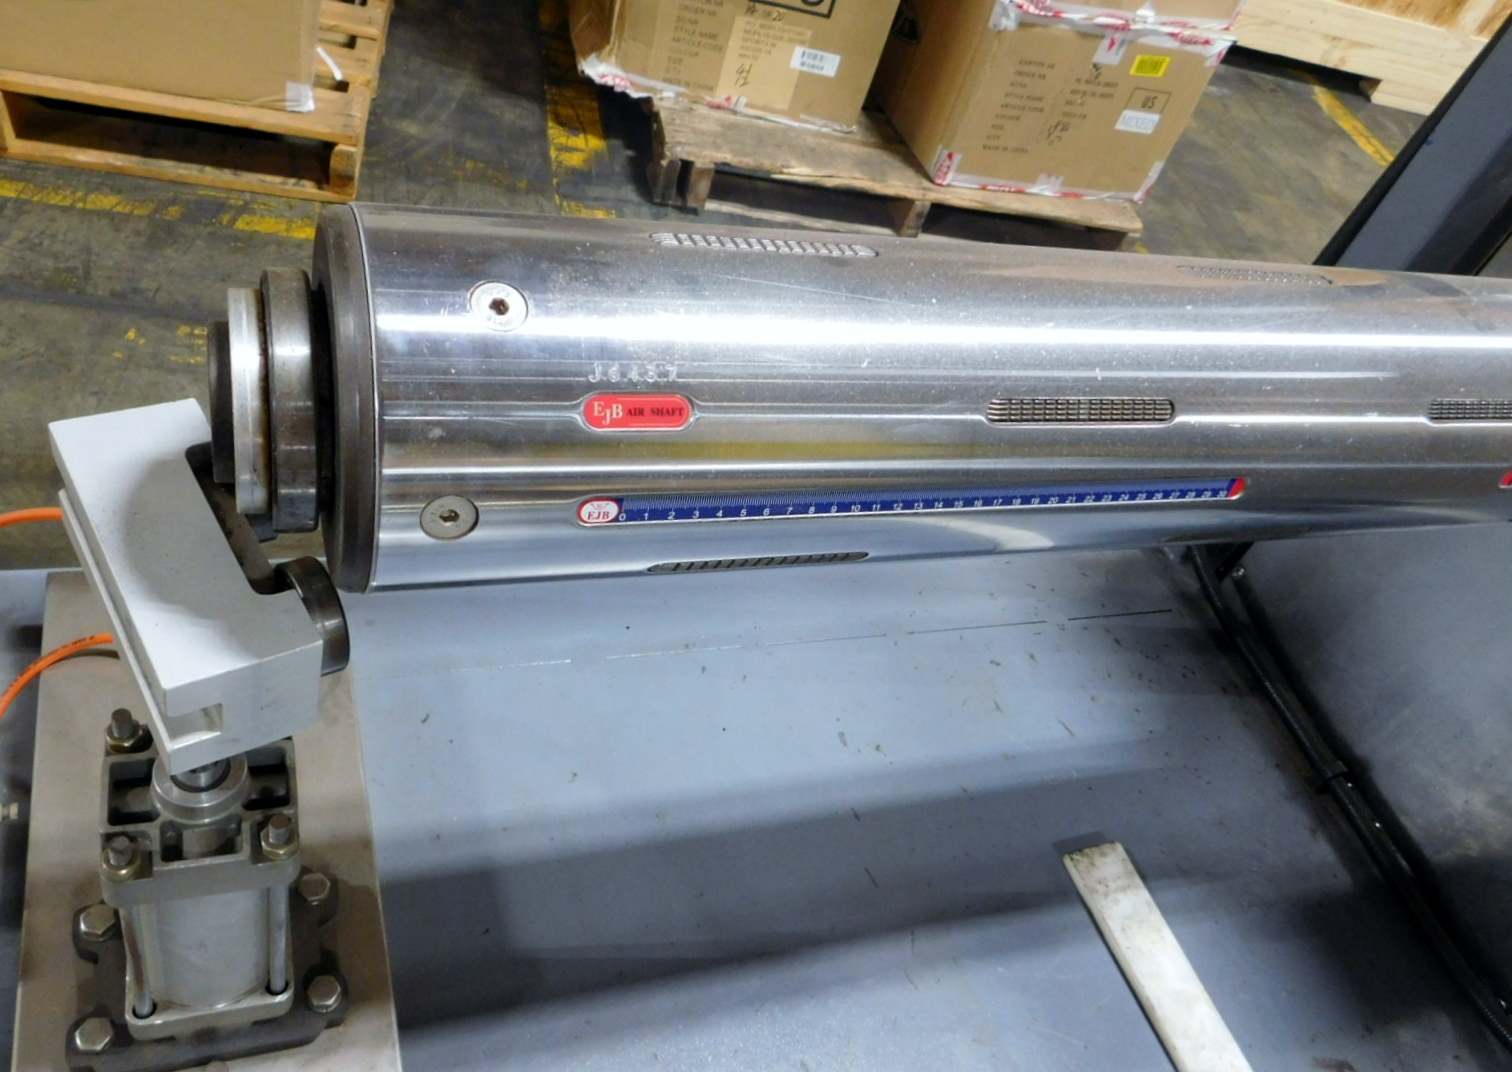 Lot 13 - Sleever Acumalator Sleeve Dispense Sleeve dispenser WITH 2 EBJ AIRSHAFTS Clark Logistic Services |